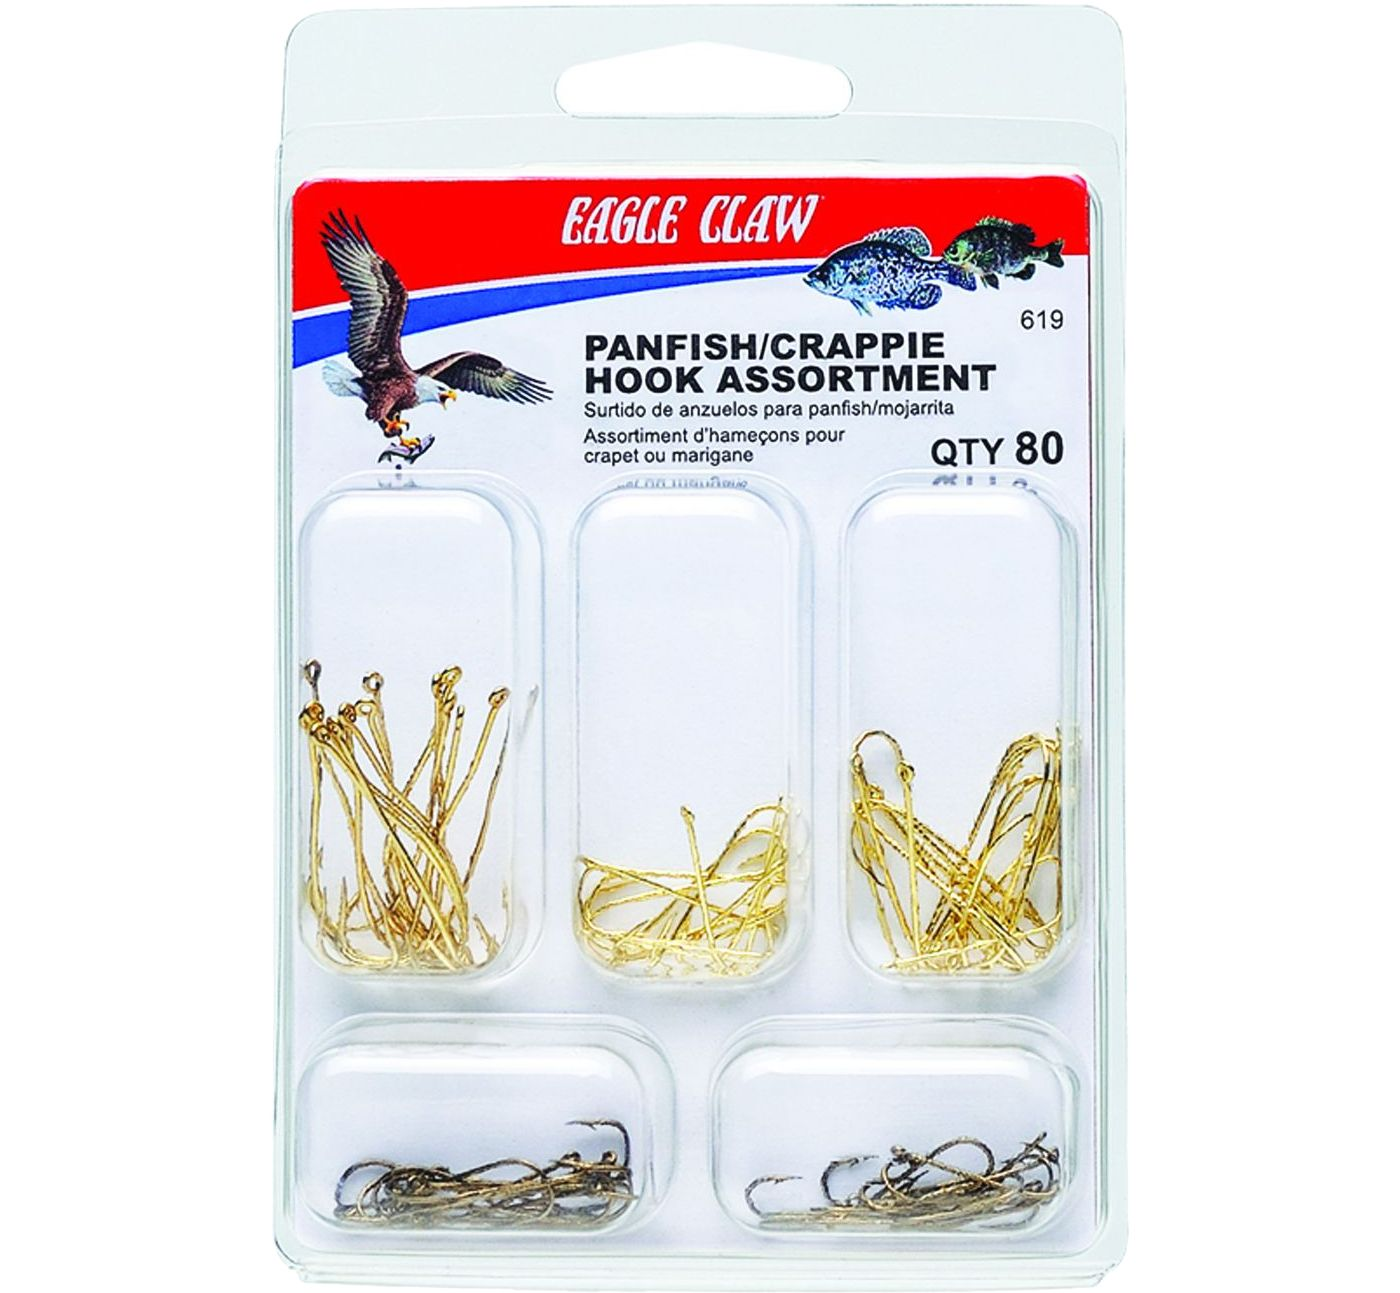 Eagle Claw Panfish/ Crappie Kit